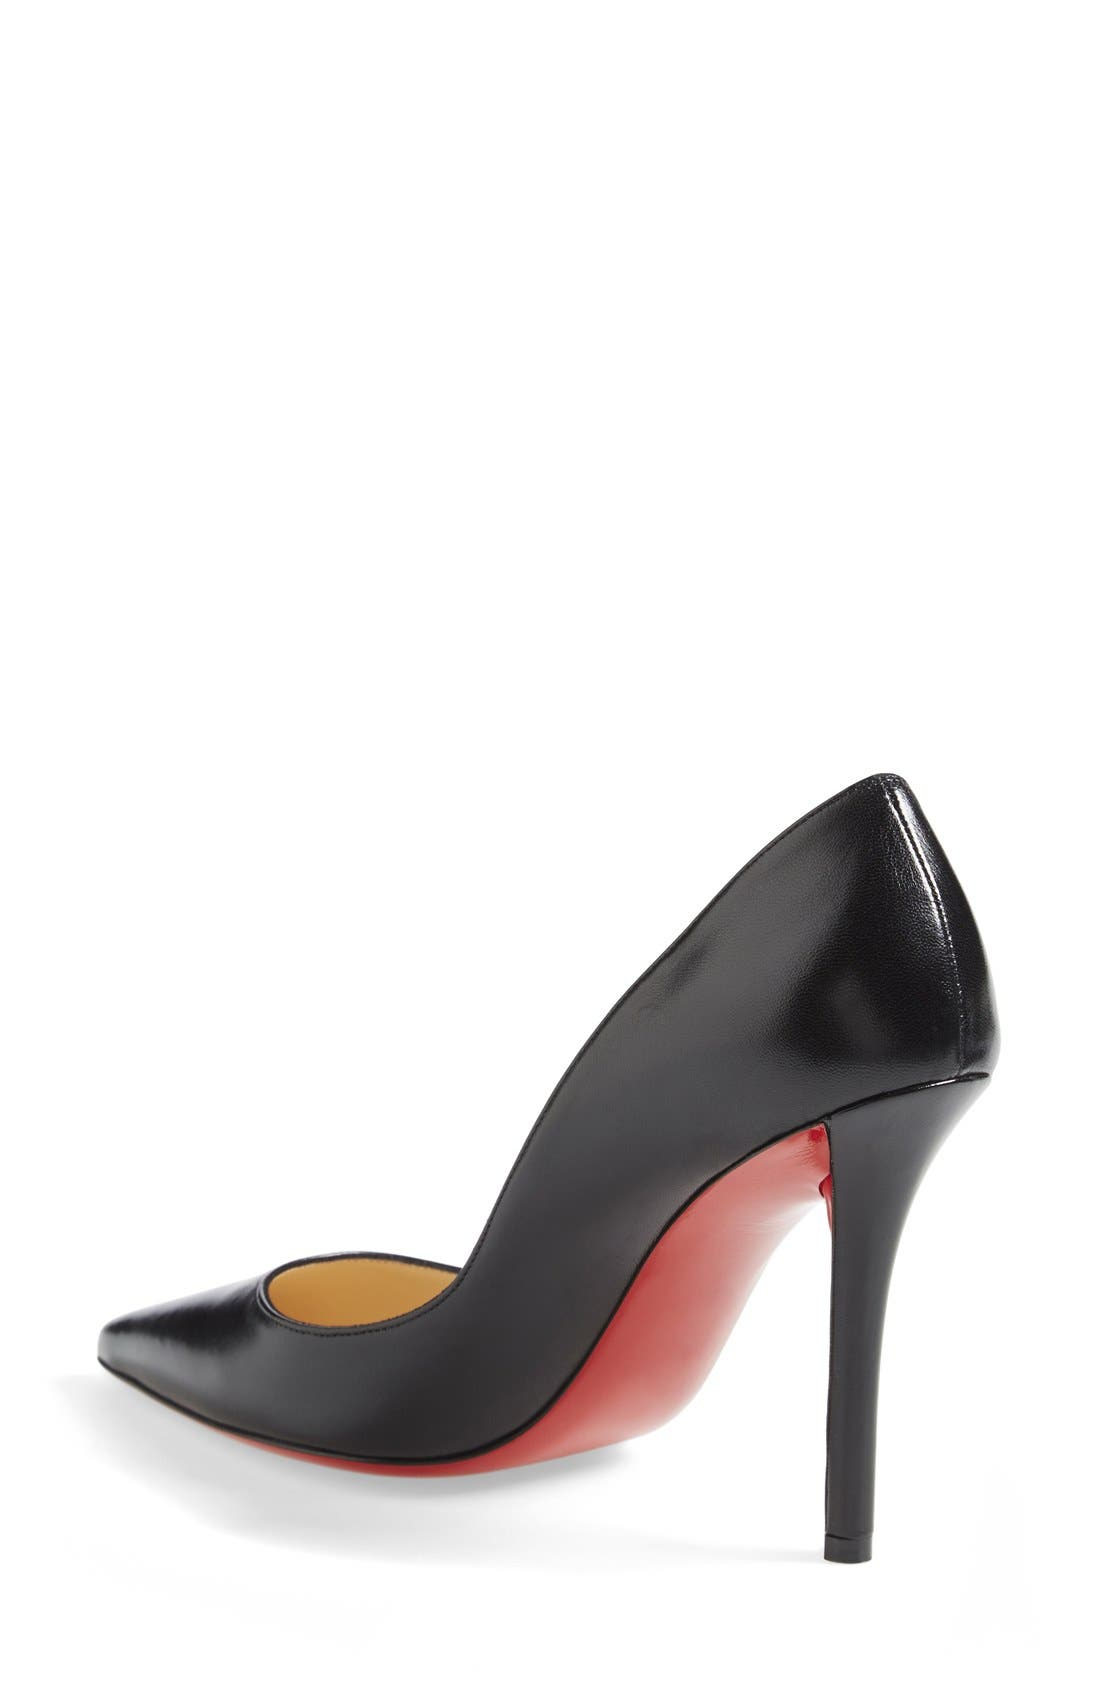 'Apostrophy' Pointy Toe Pump,                             Alternate thumbnail 17, color,